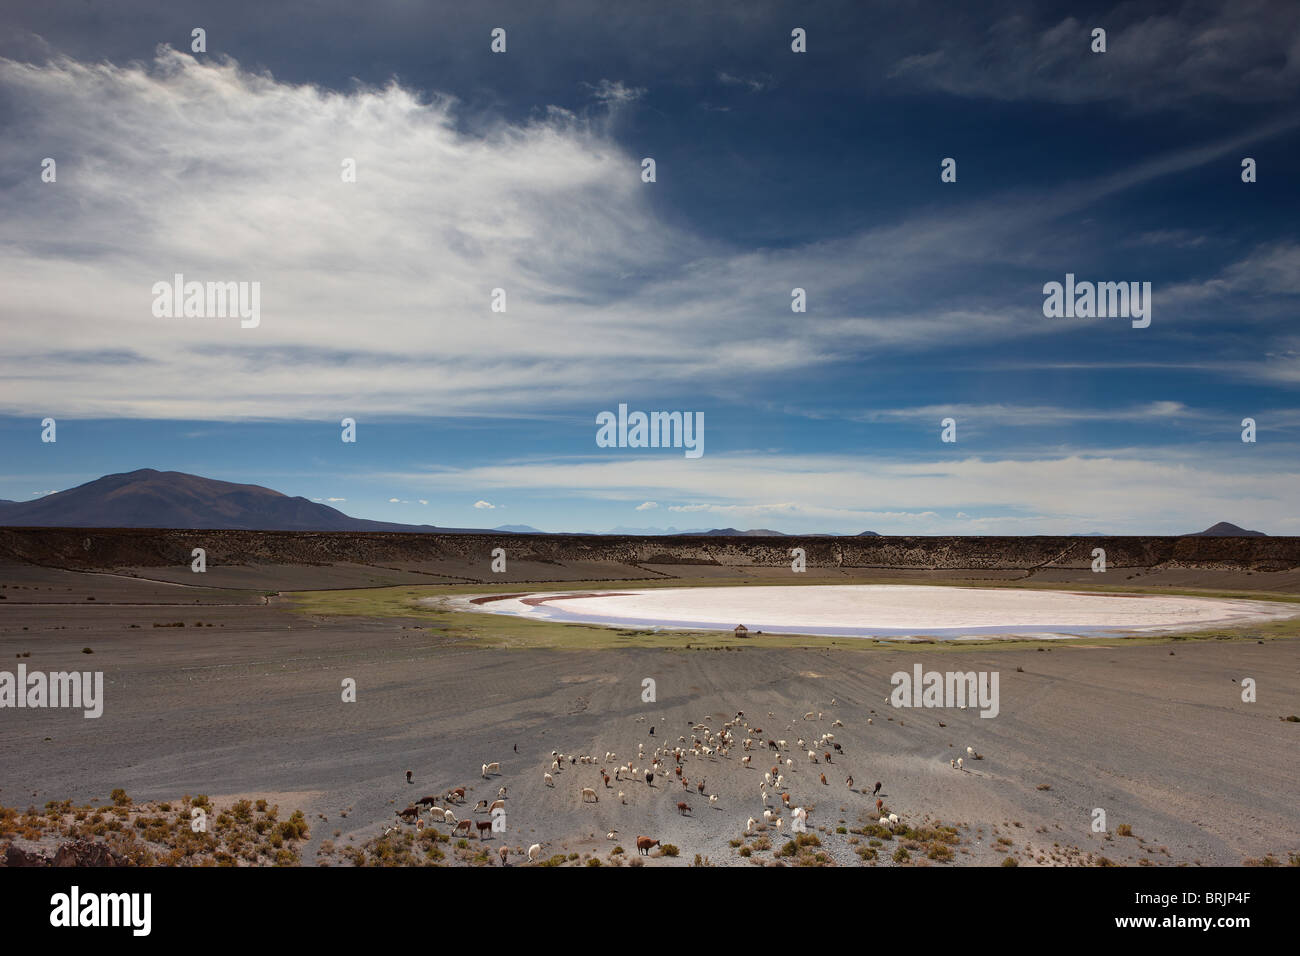 a herd of llama in a volcanic crater on the altiplano, nr Castiloma, Bolivia - Stock Image